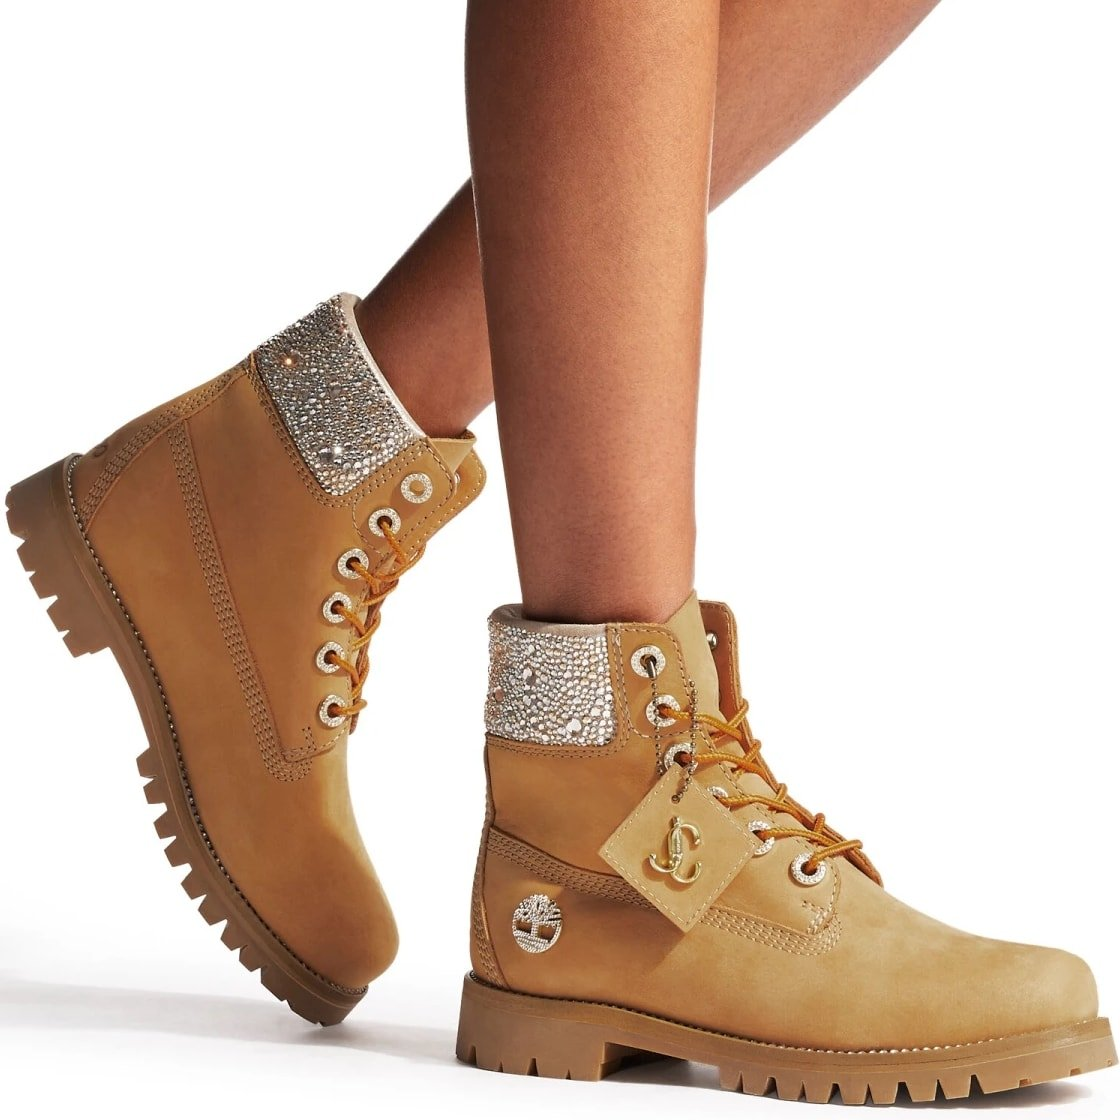 The Jimmy Choo x Timberland collaboration fuses the rugged appeal of Timberland with the inherent glamour of Jimmy Choo